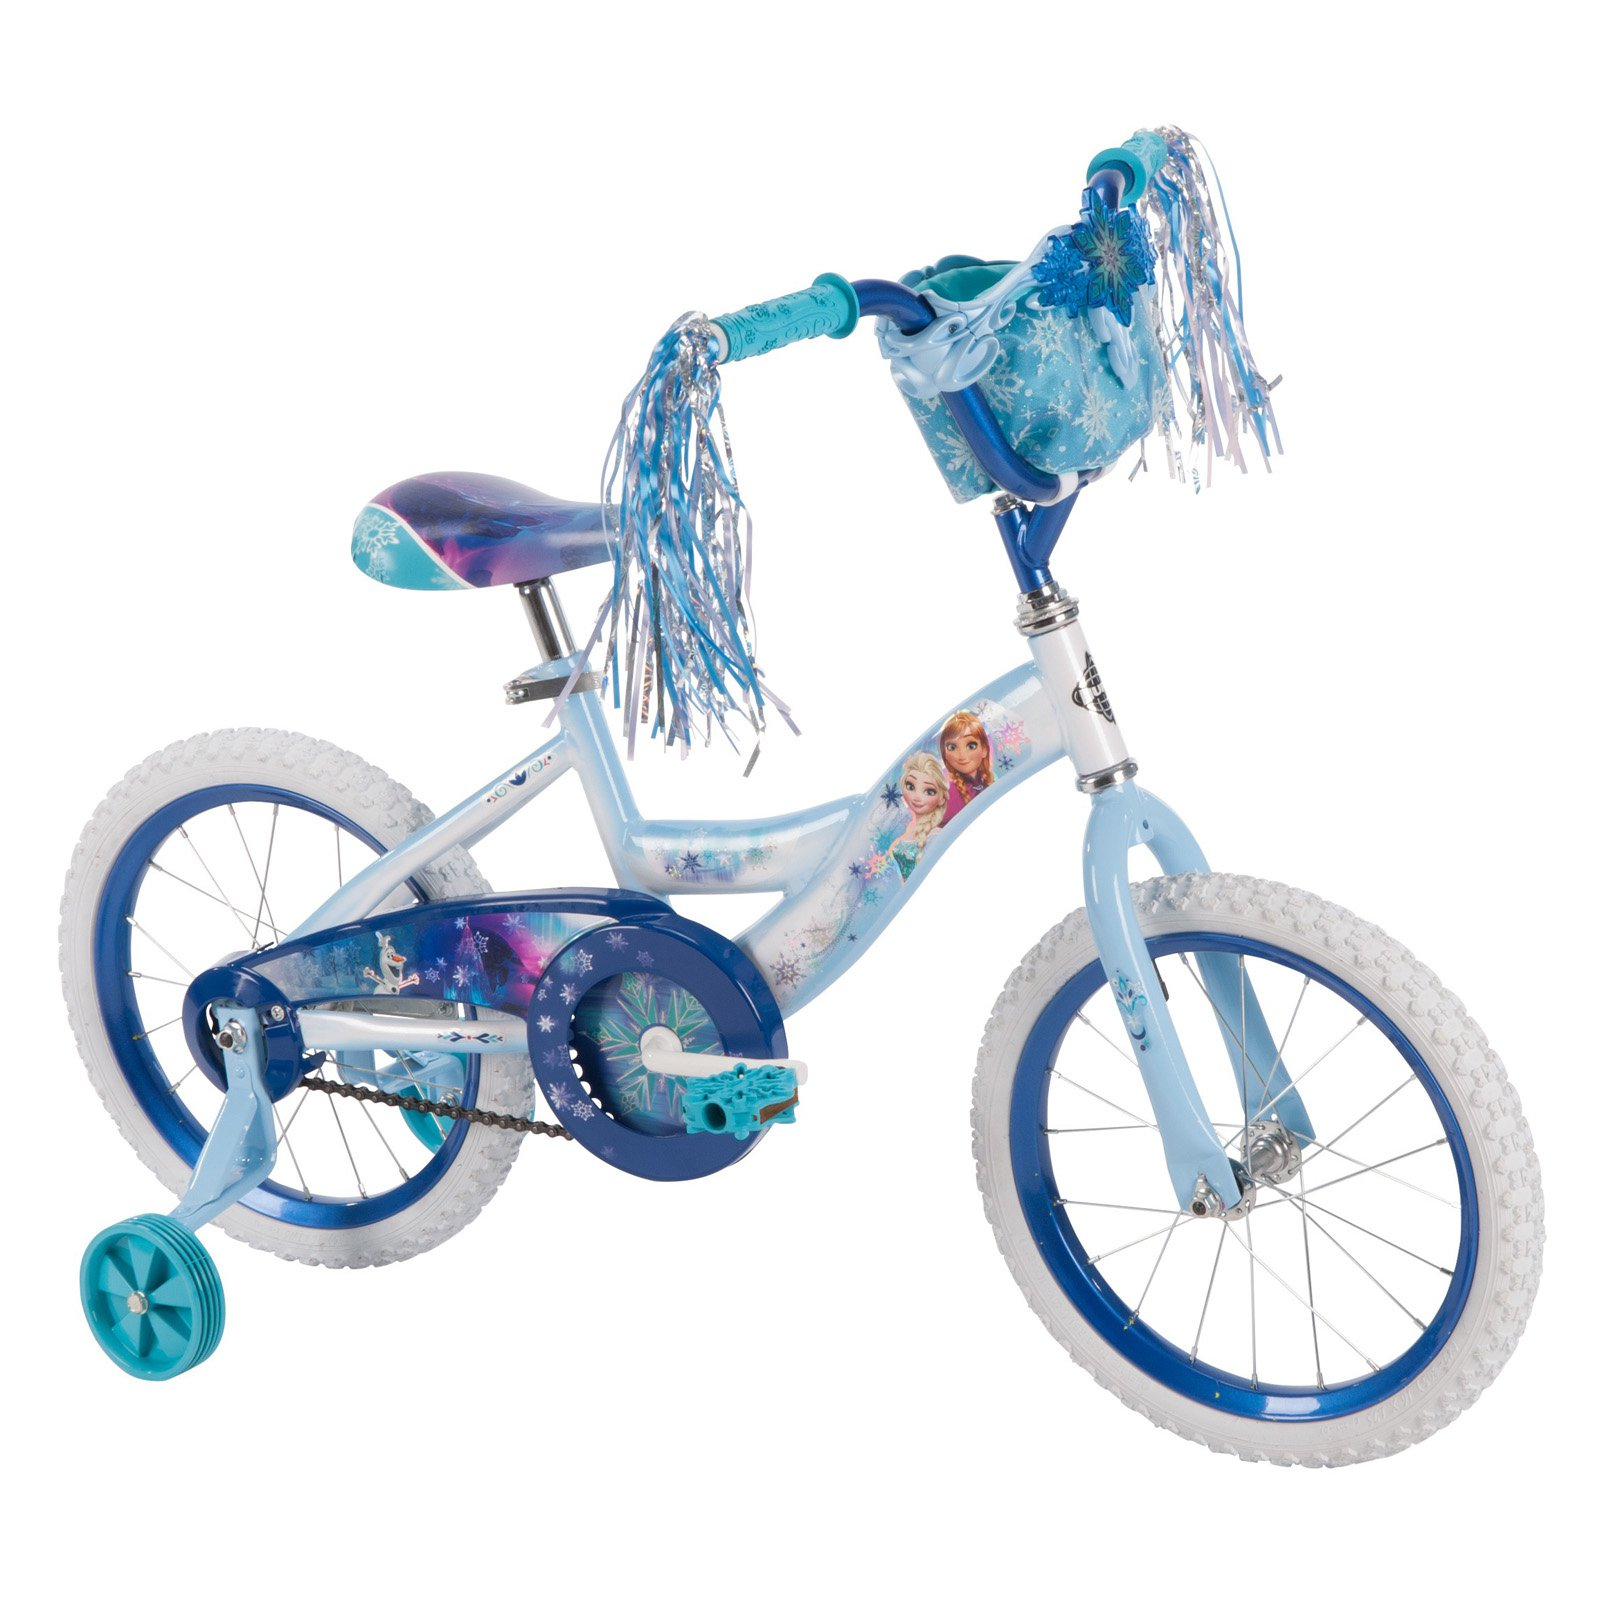 Huffy 16 in. Disney Frozen Bike with Handlebar Bag